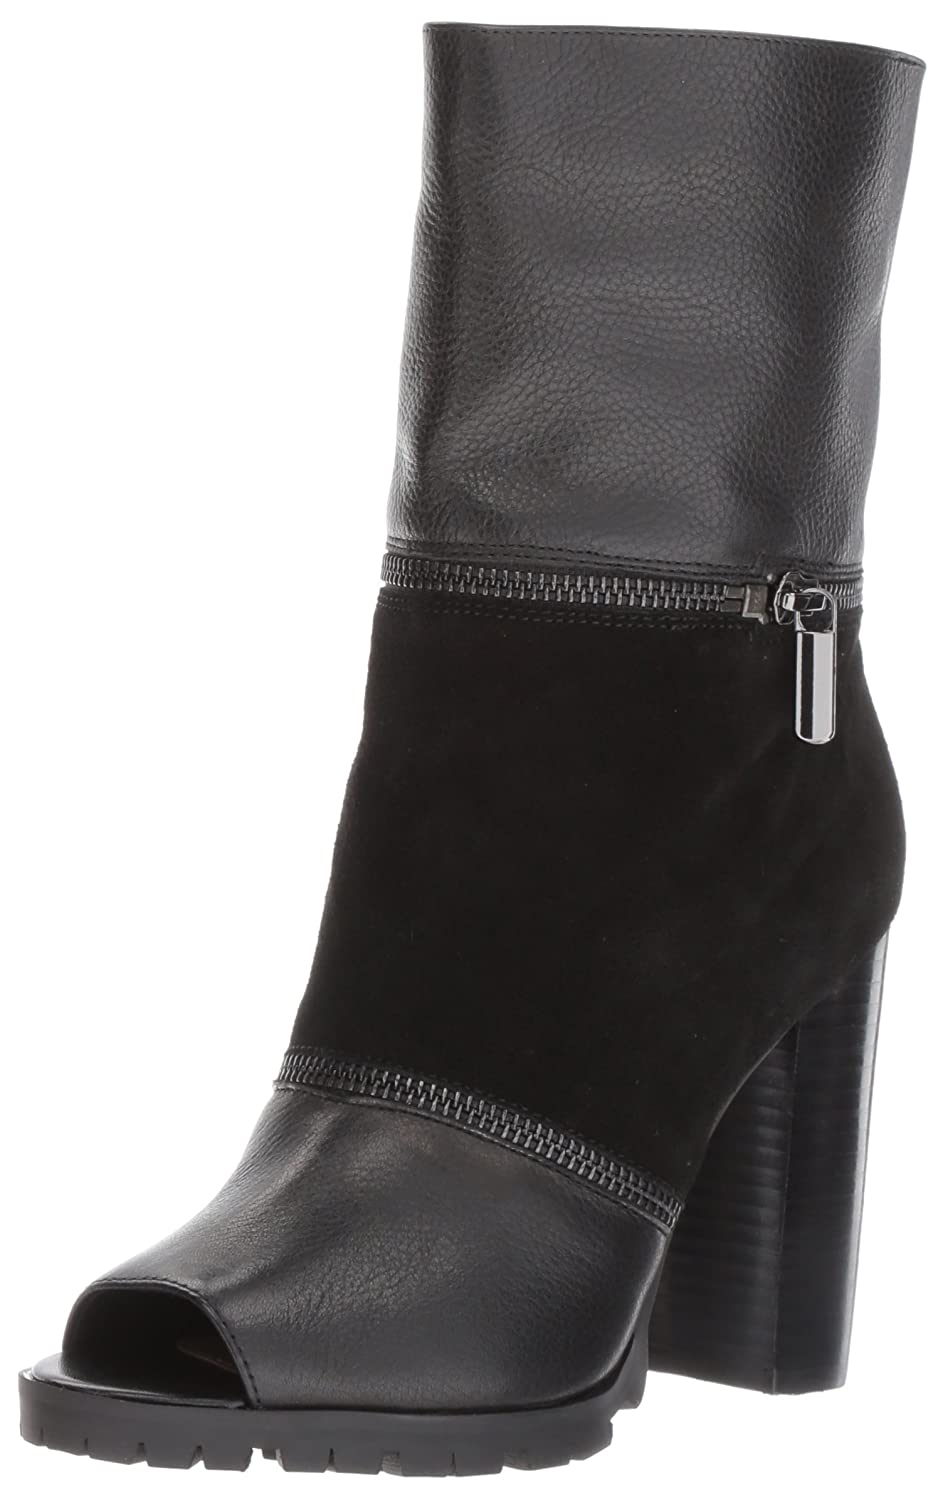 Katy Perry Women's The Evelyn Mid Calf Boot